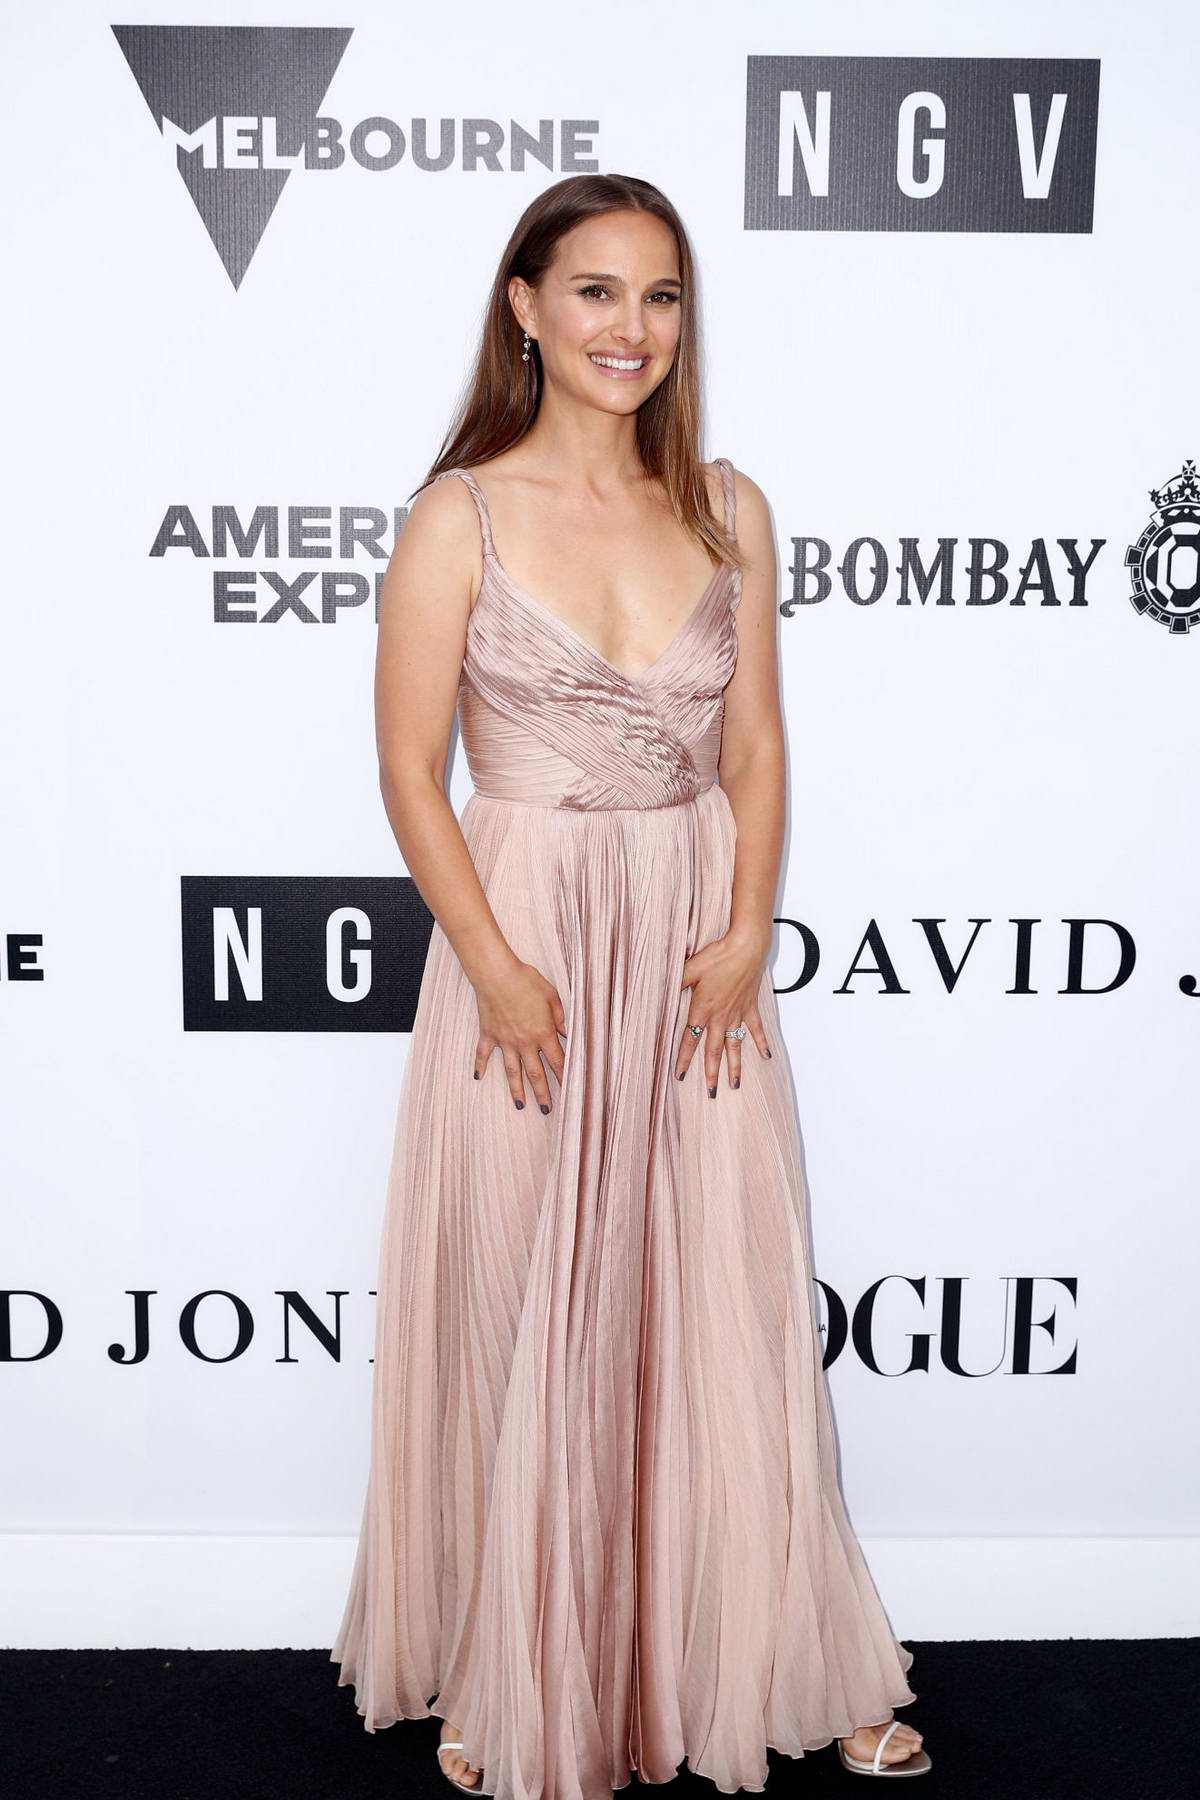 Natalie Portman attends the NGV Gala 2018 at National Gallery of Victoria in Melbourne, Australia